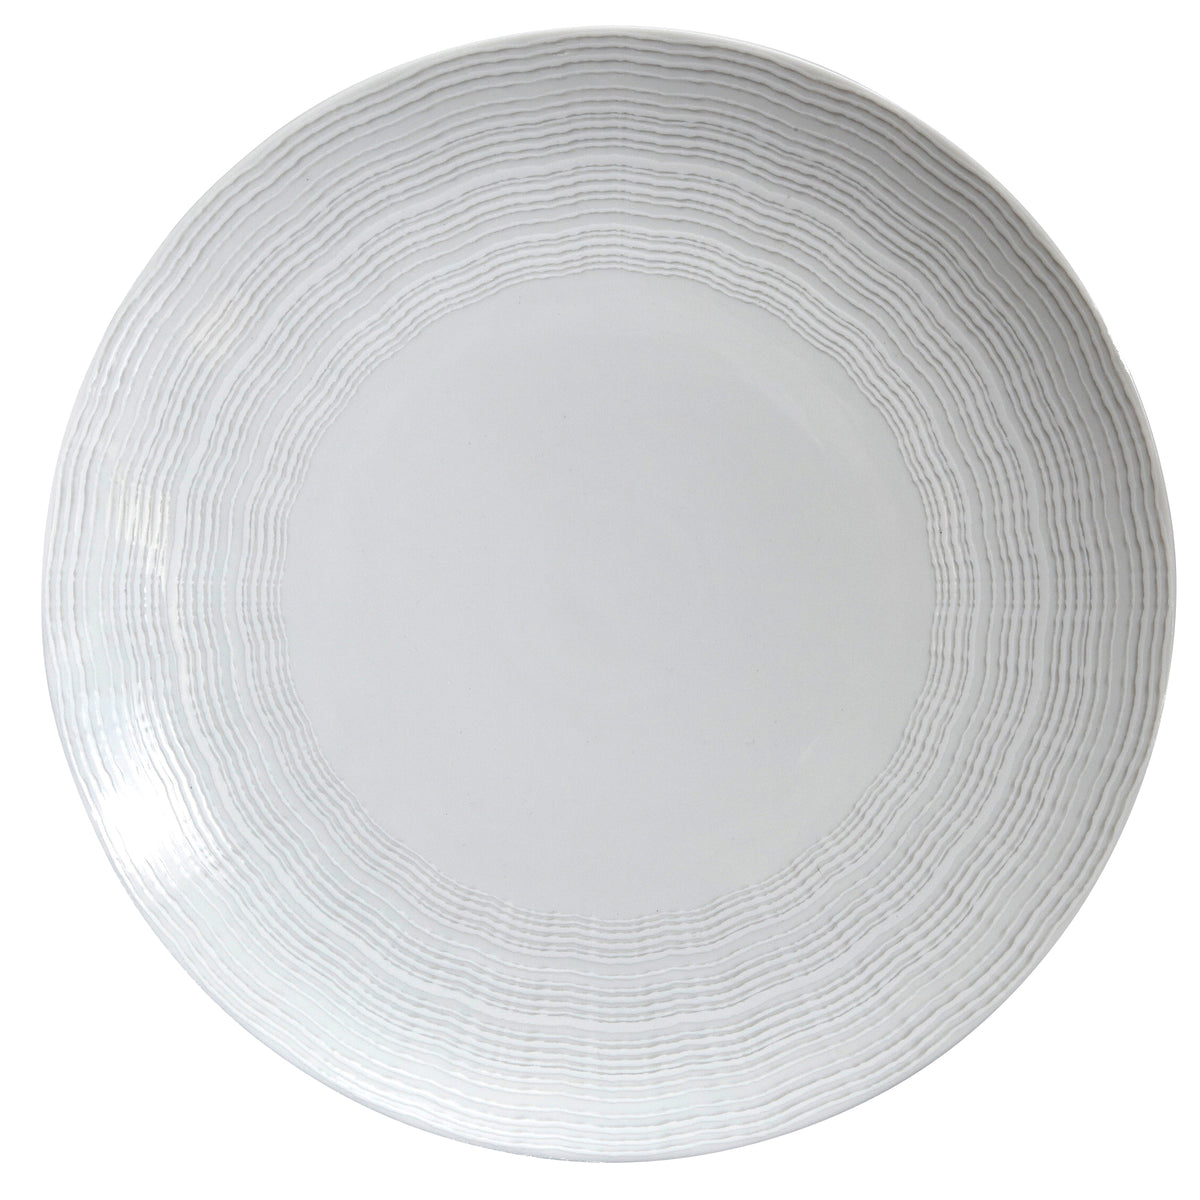 Mar Porcelain Charger Plate